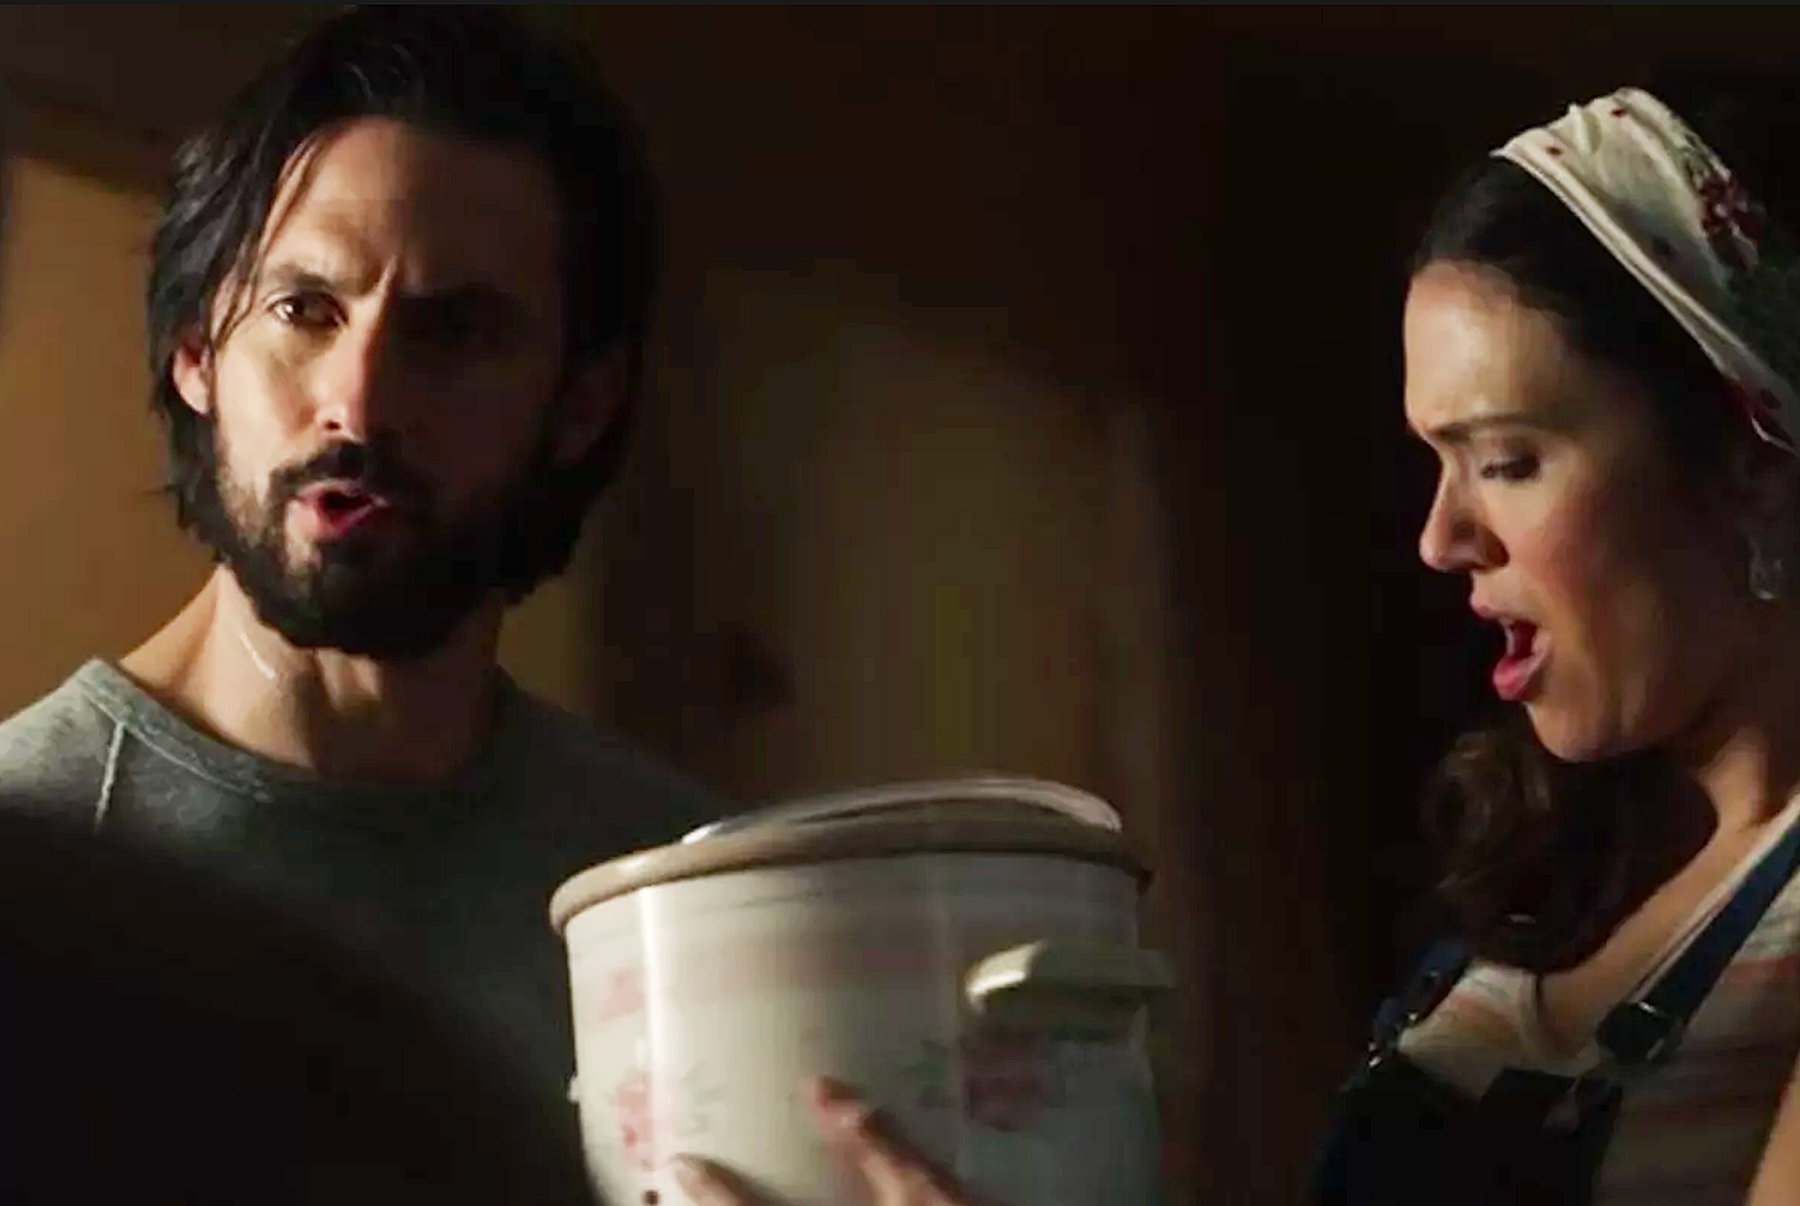 Milo Ventimiglia Mandy Moore crock pot This Is Us